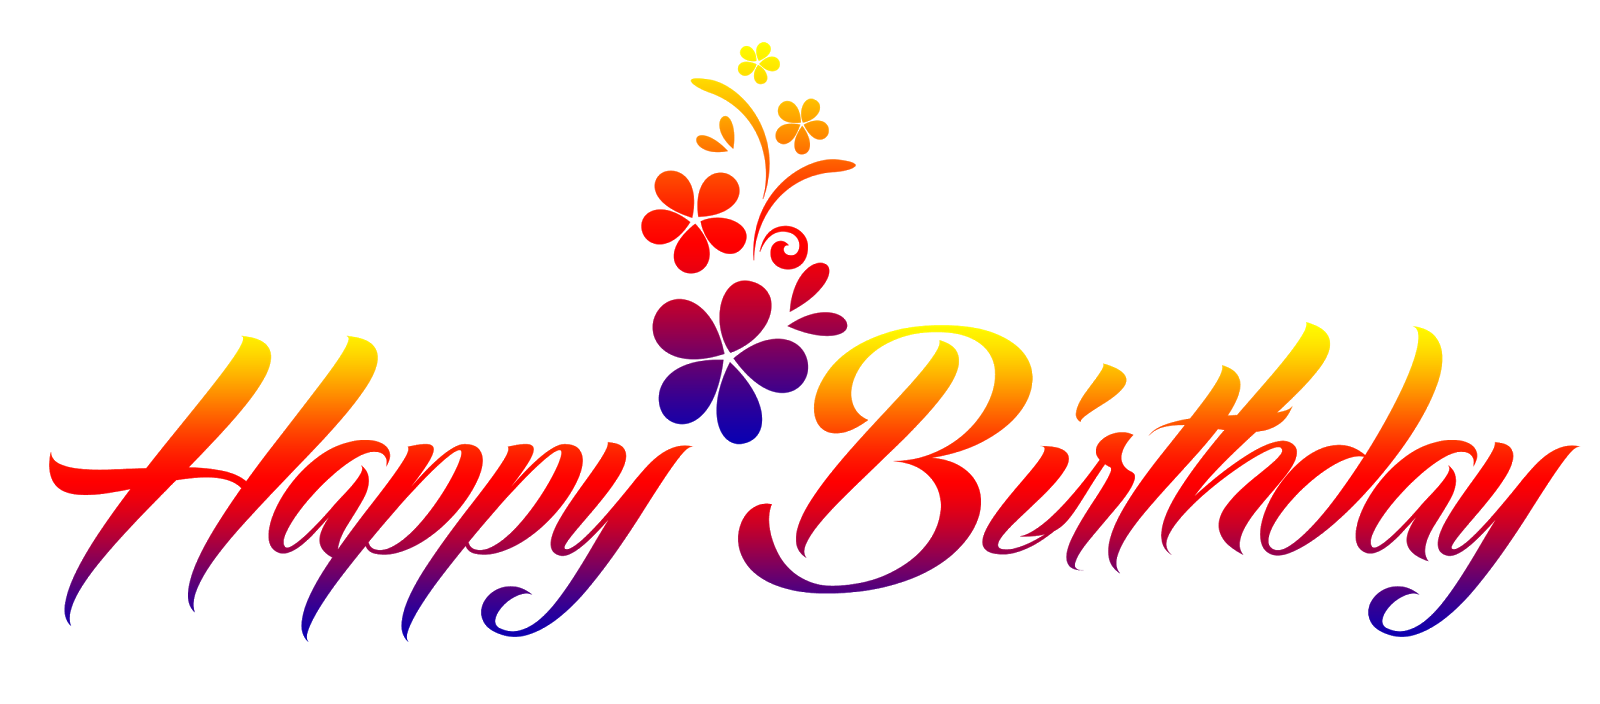 Happy birthday png images. Transprent free download text